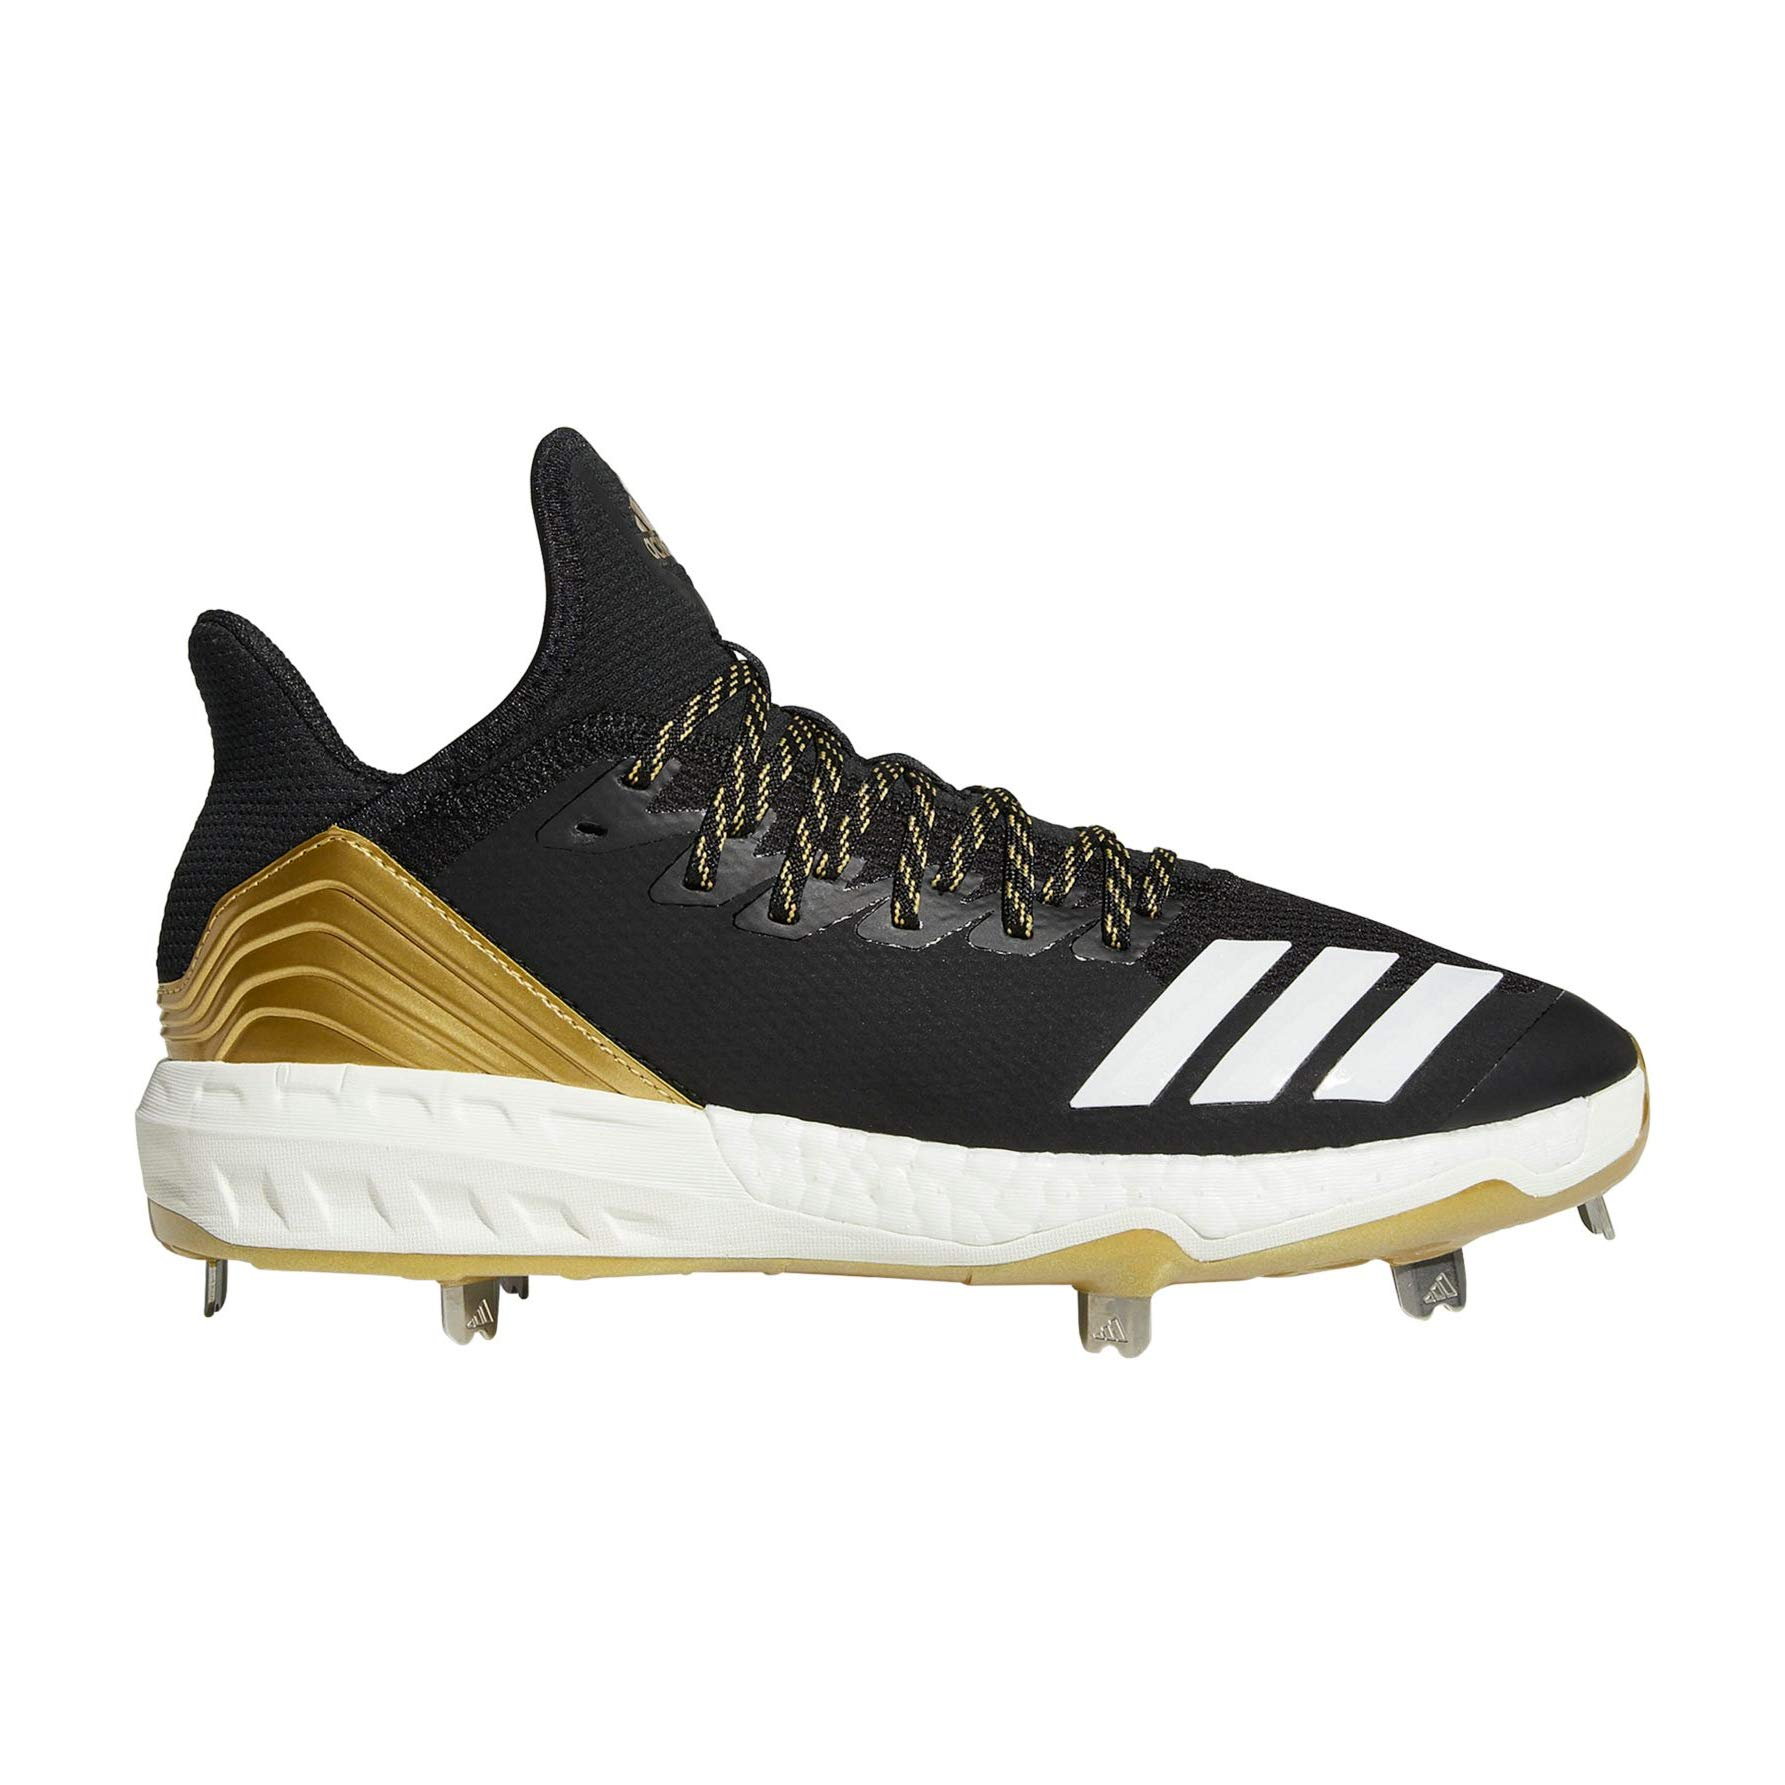 adidas Icon 4 Cleat - Men's Baseball 7 Black/White/Carbon by adidas (Image #1)